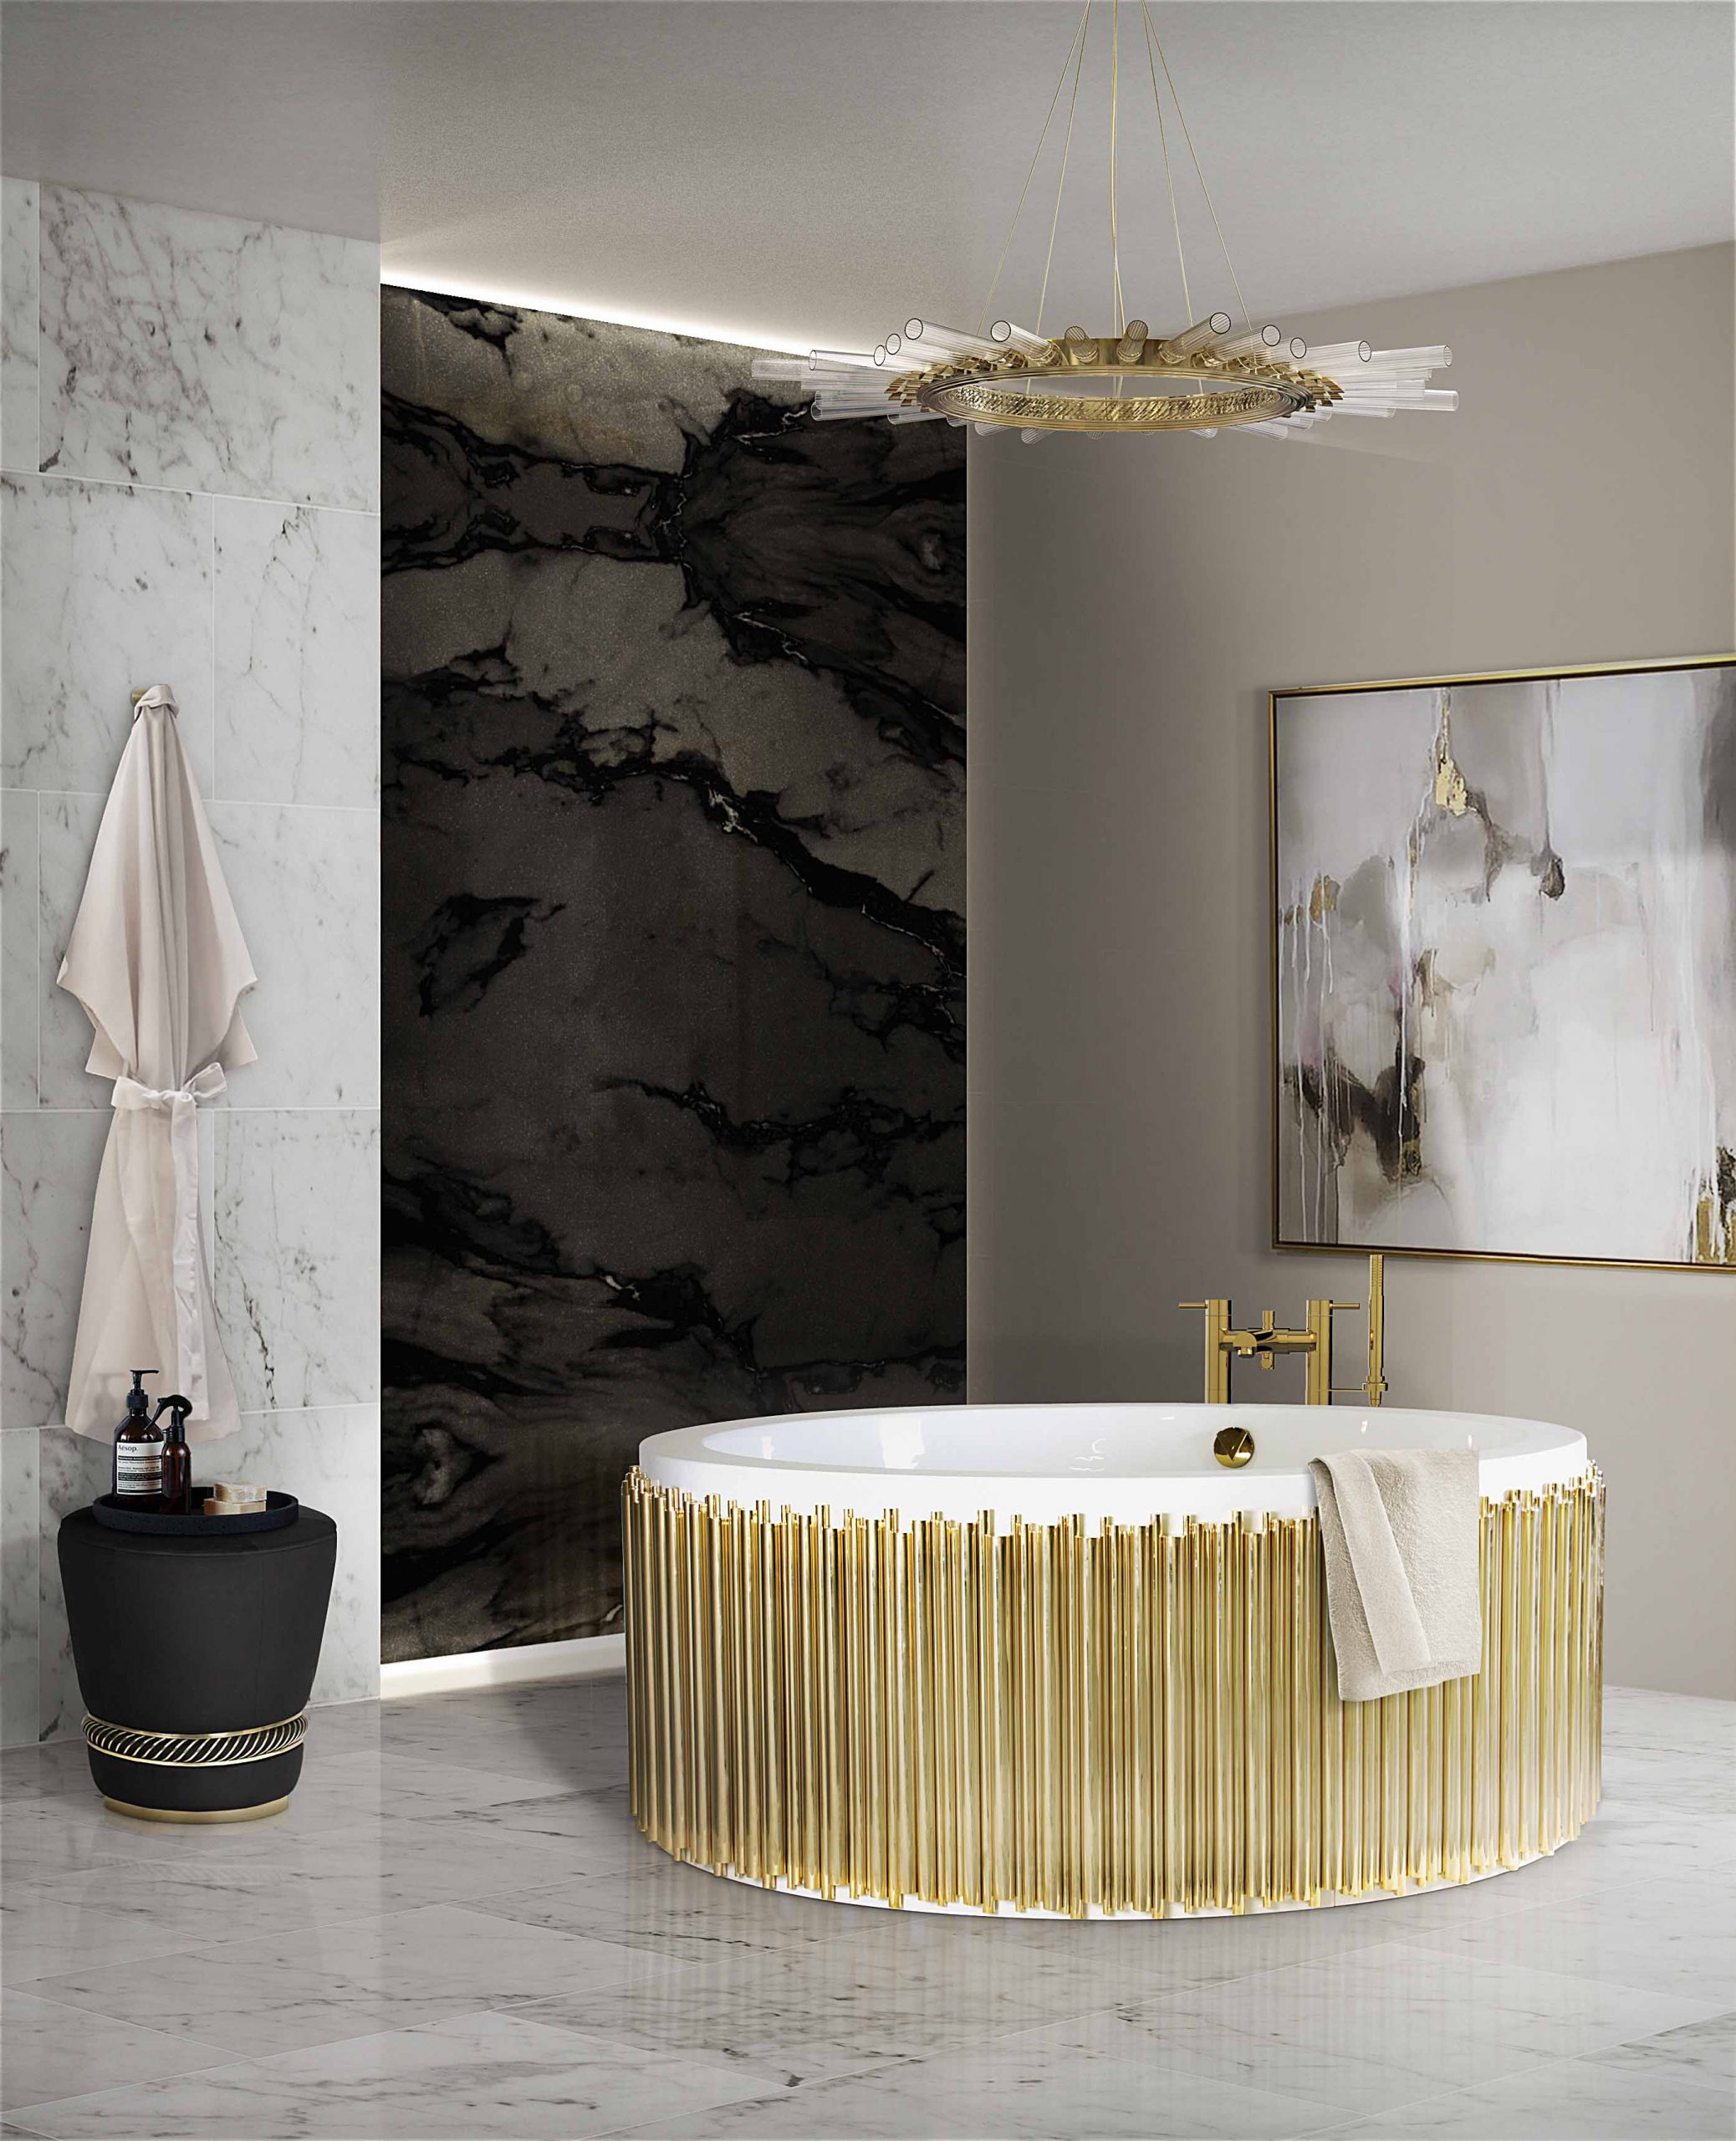 5 Lighting Design Trends for 2020 5 lighting design trends 5 Lighting Design Trends for 2021 27 symphony bathtub black paramount surface scaled